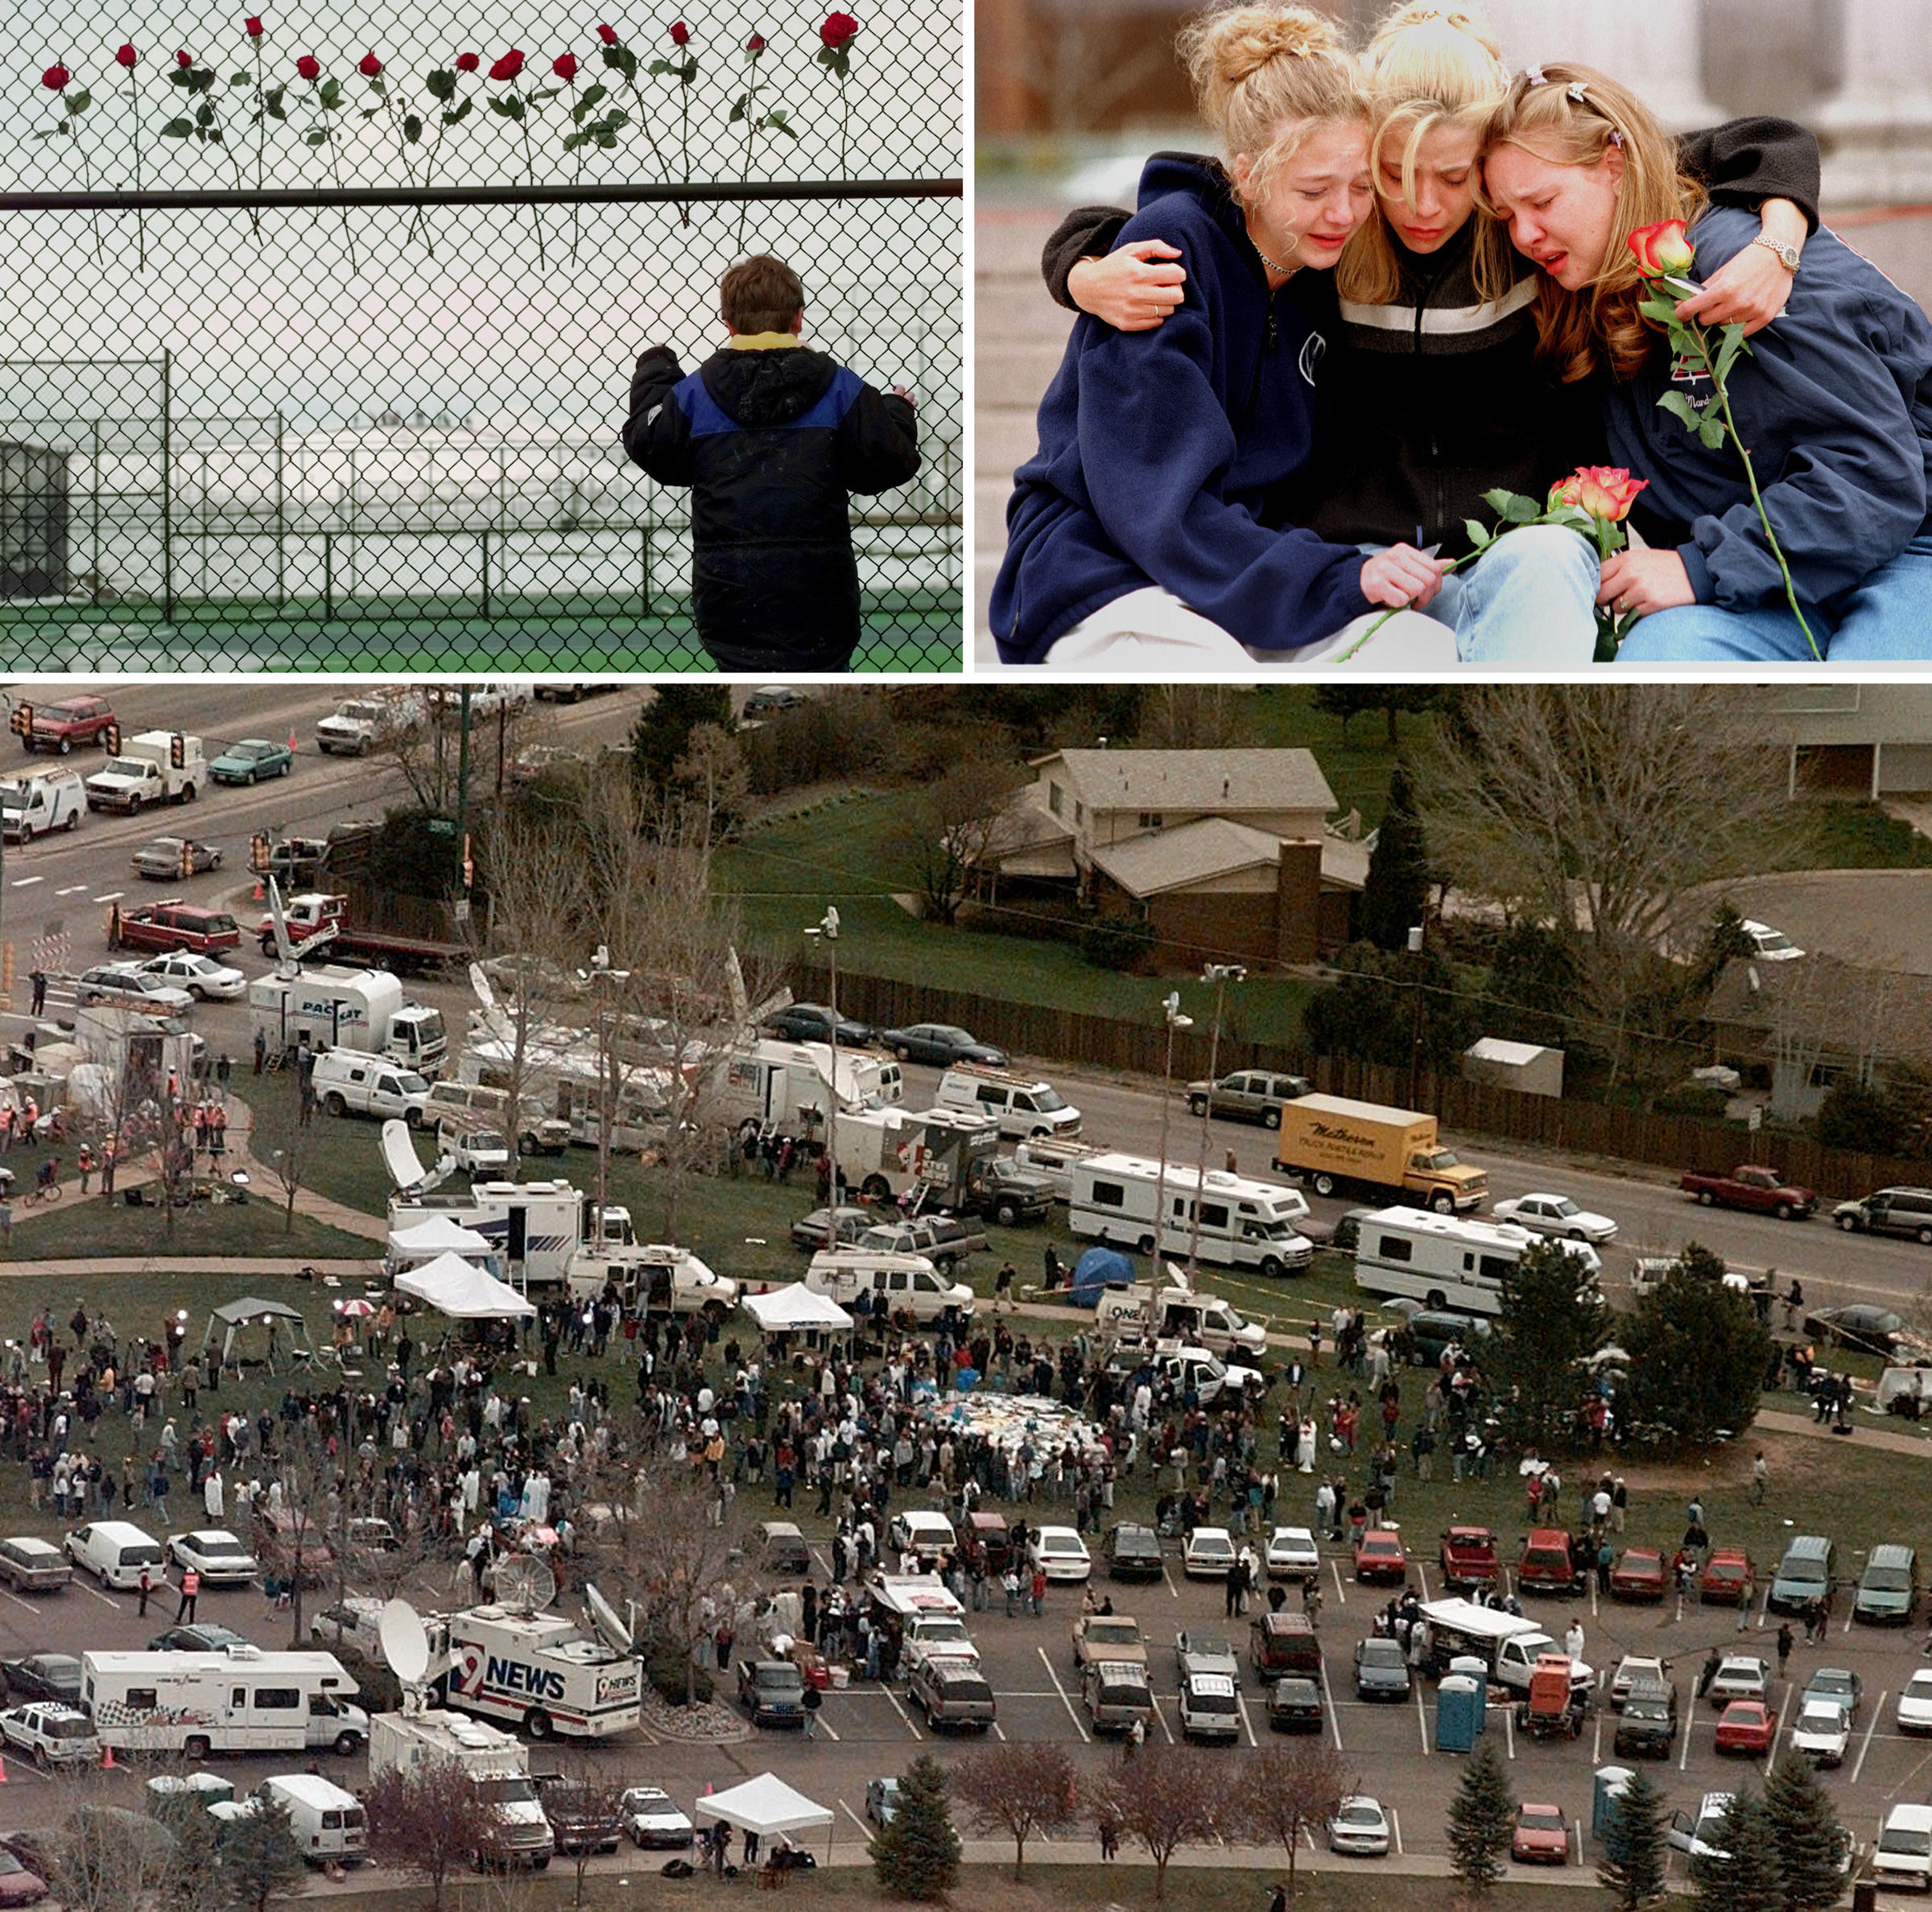 School Shooting Wyoming: A List Of The Deadliest Mass Shootings In Modern U.S